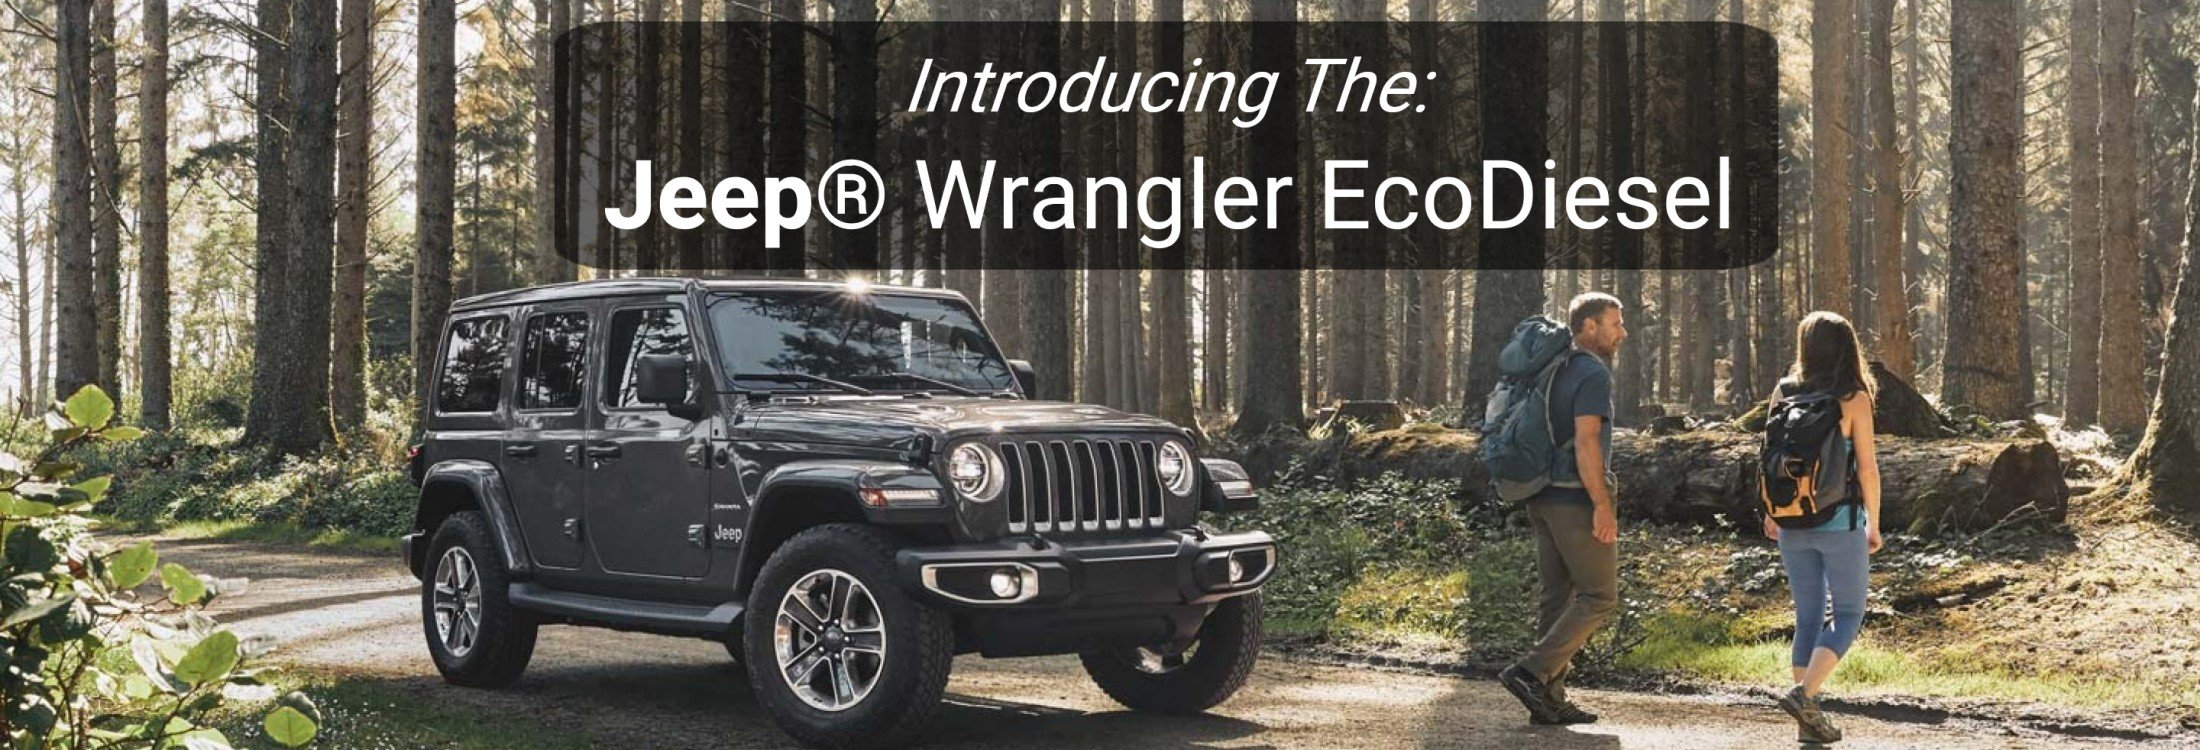 Jeep Wrangler Ecodiesel Lease Offers Finance Prices Louisville Ky